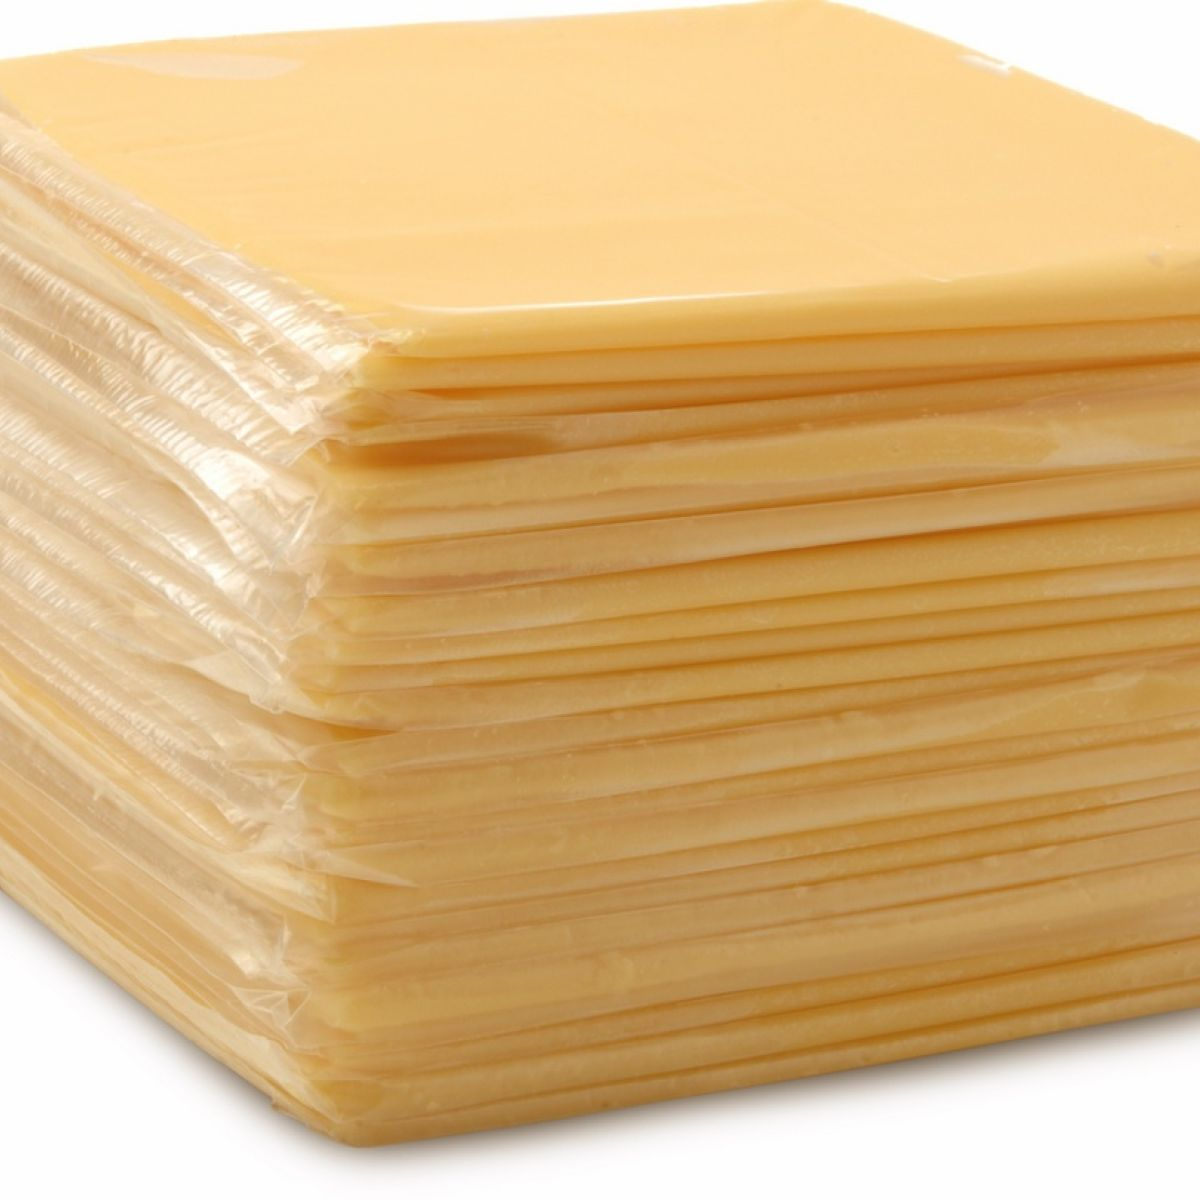 What S Really In A Packet Of Processed Cheese Slices